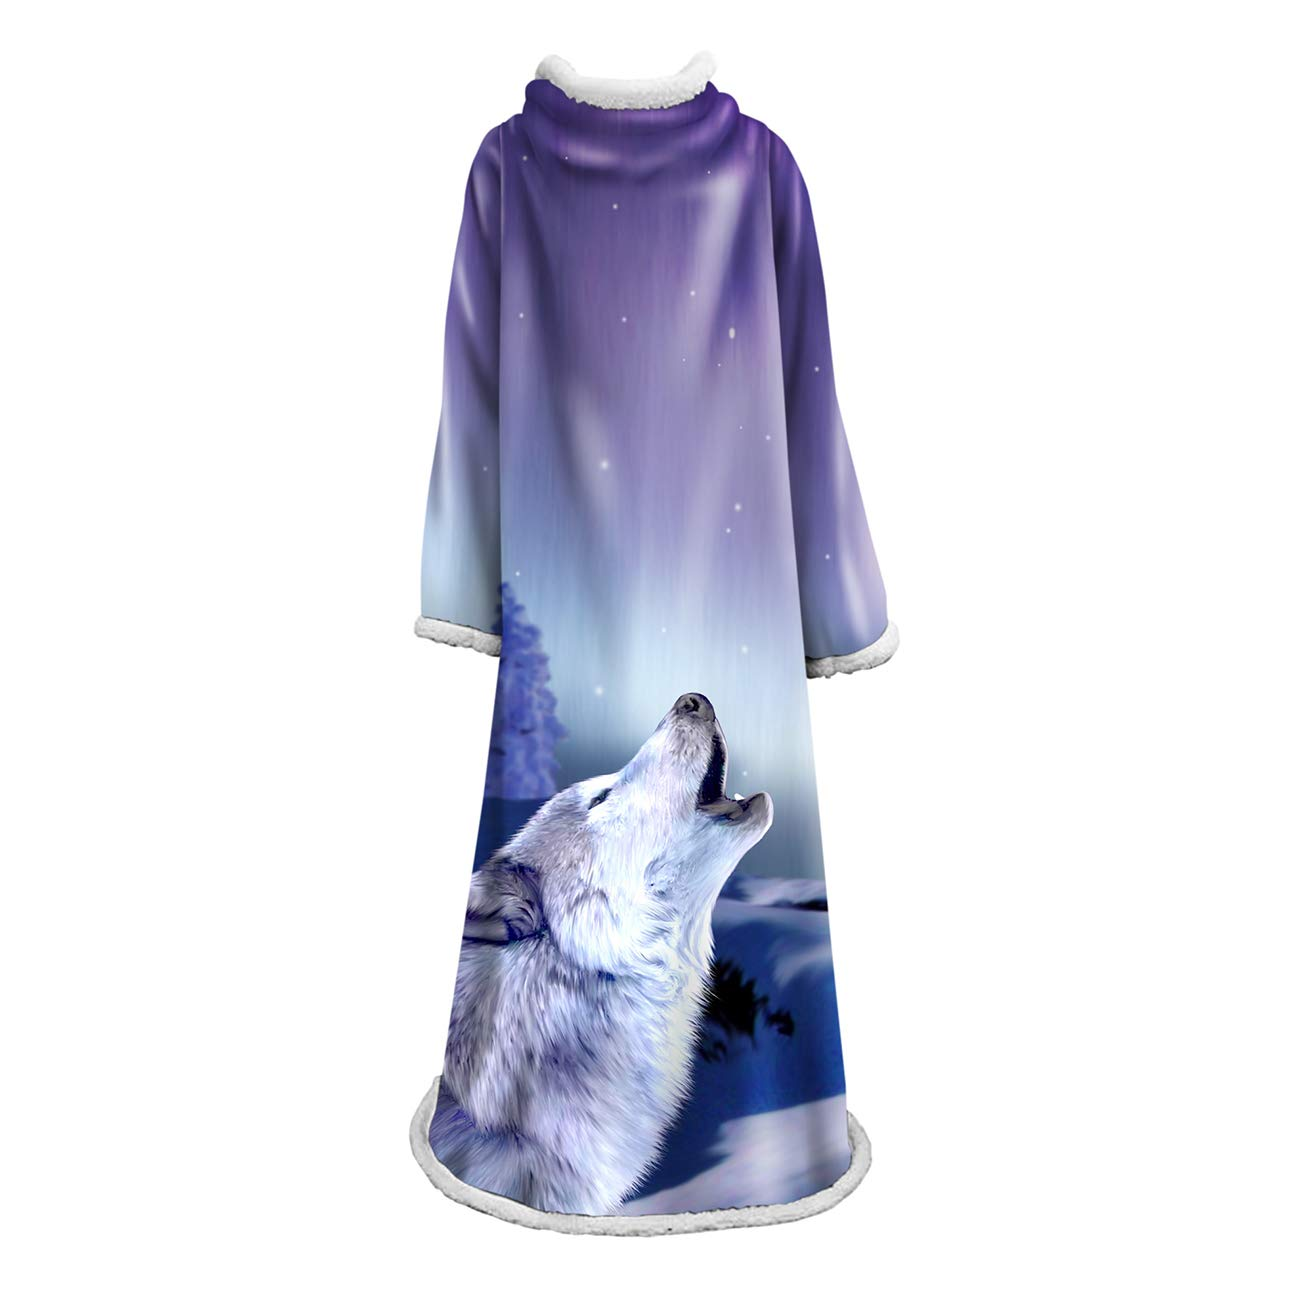 Snuggies for Adults - Wearable Blanket with Sleeves Women - Wearable Blanket Adults - Lazy Slanket Reading Throw Blanket for Men and Women Elegant Lightweight by LONTA